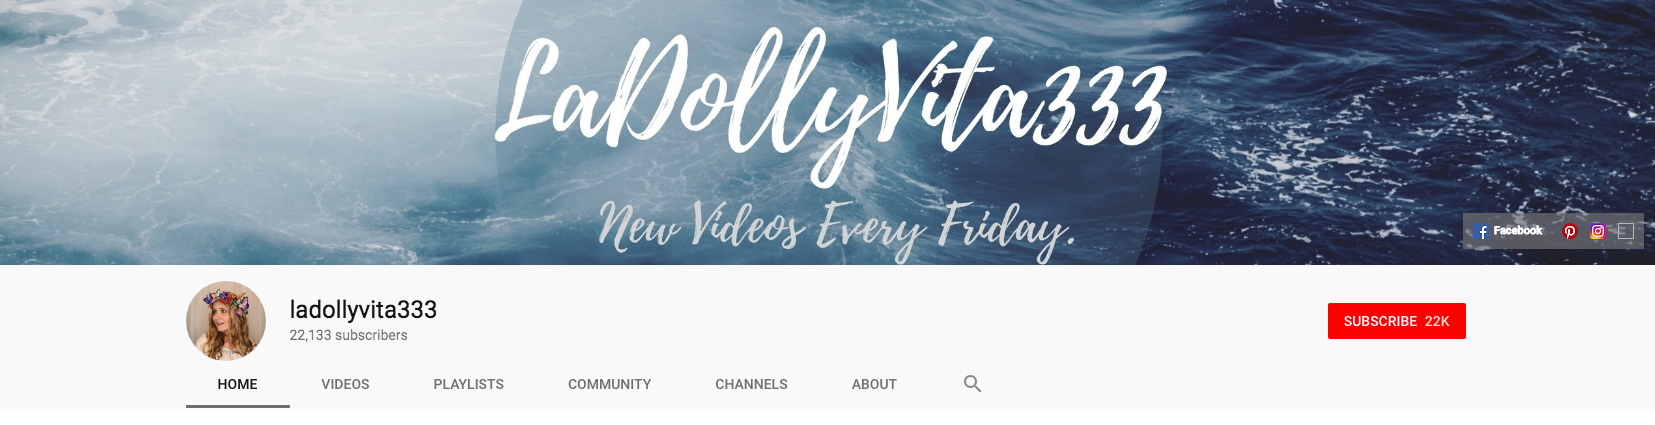 YouTube banner for LaDollyVita333 channel.